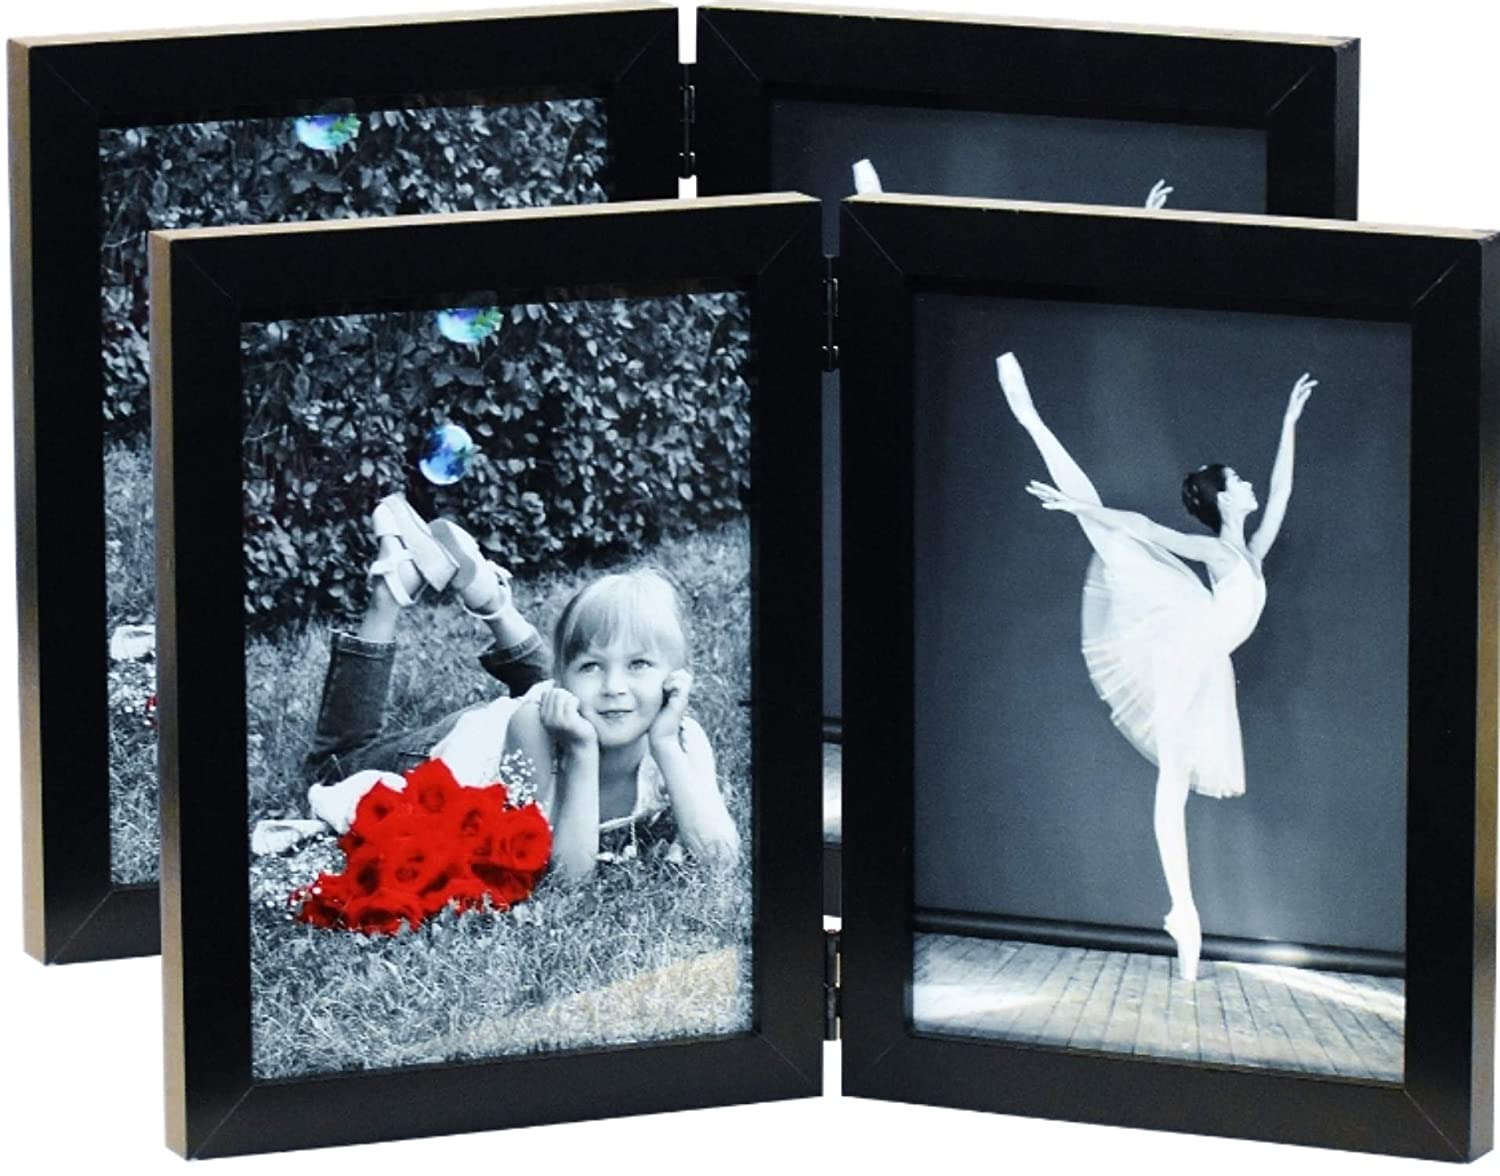 ffbda8e869ae ... Wood Photo Frames with Glass Front - Displays Two 5